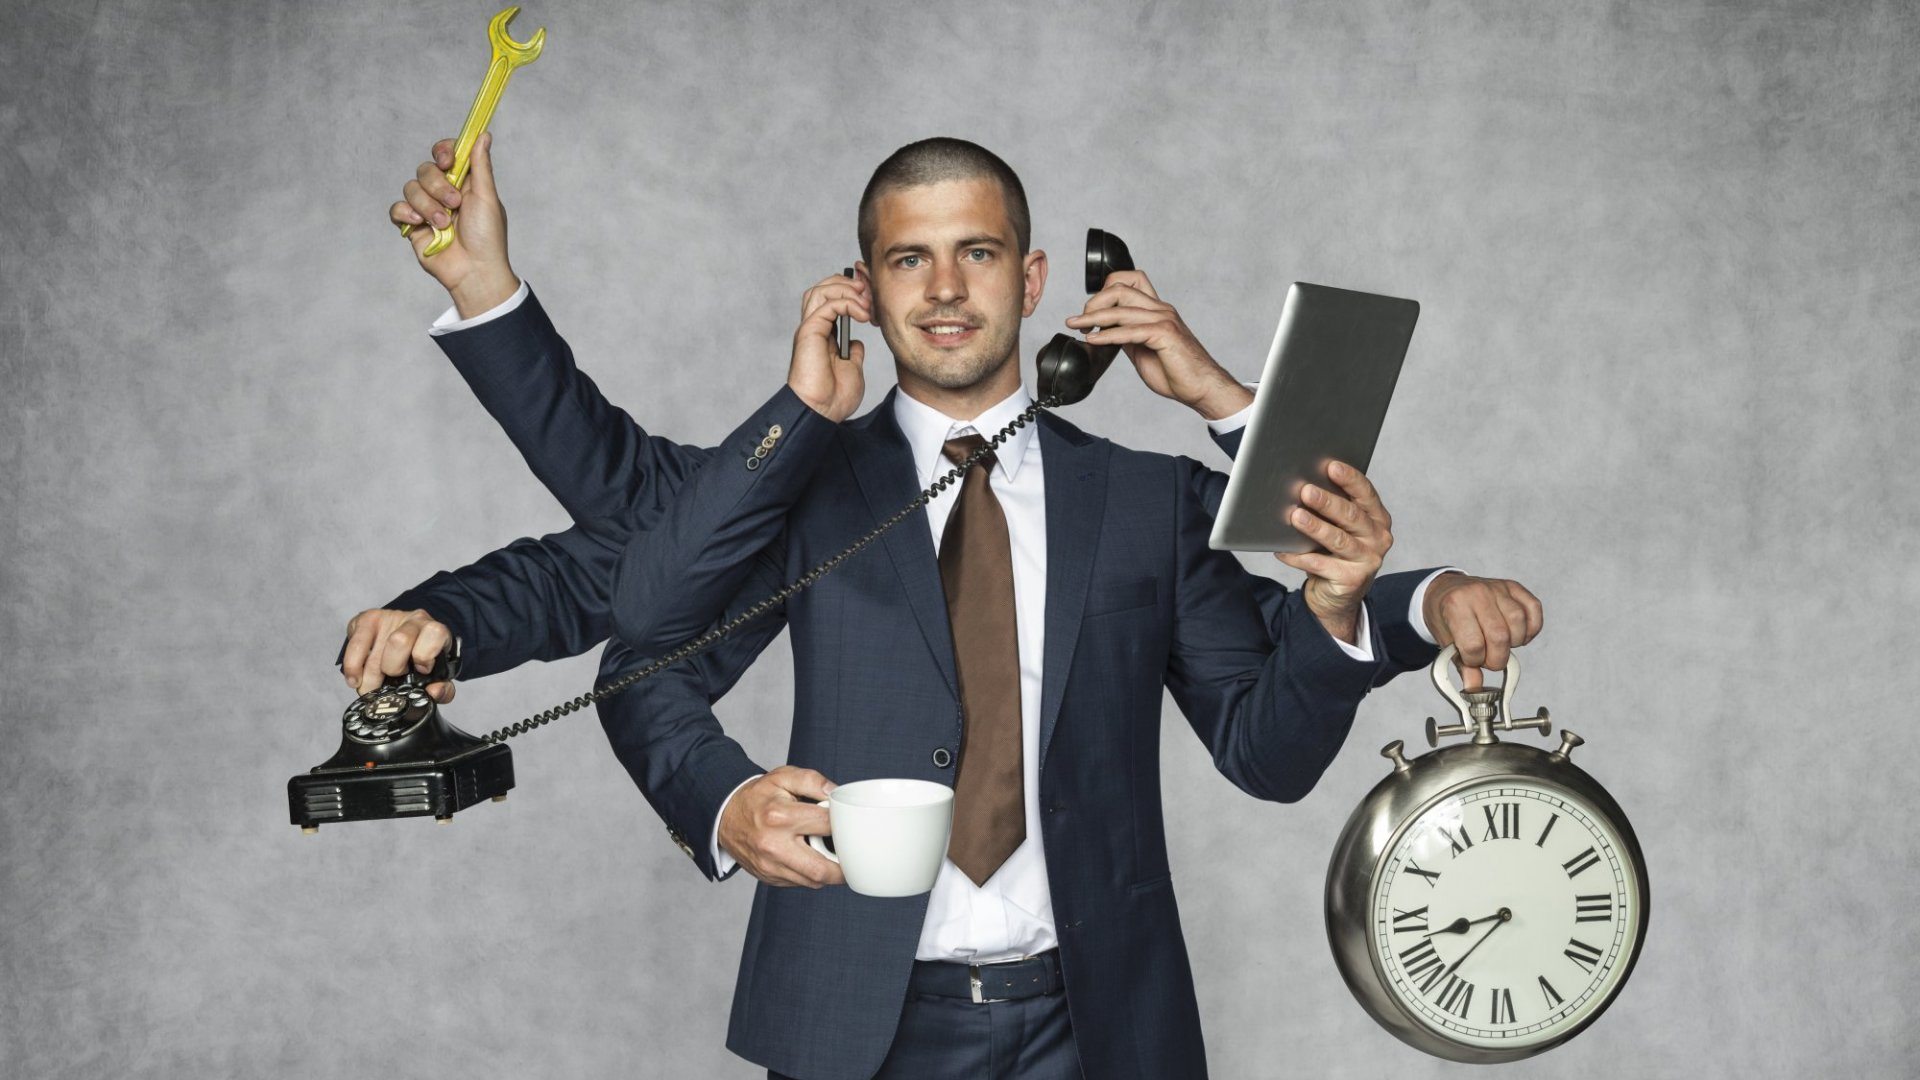 Win the war on productivity once and for all